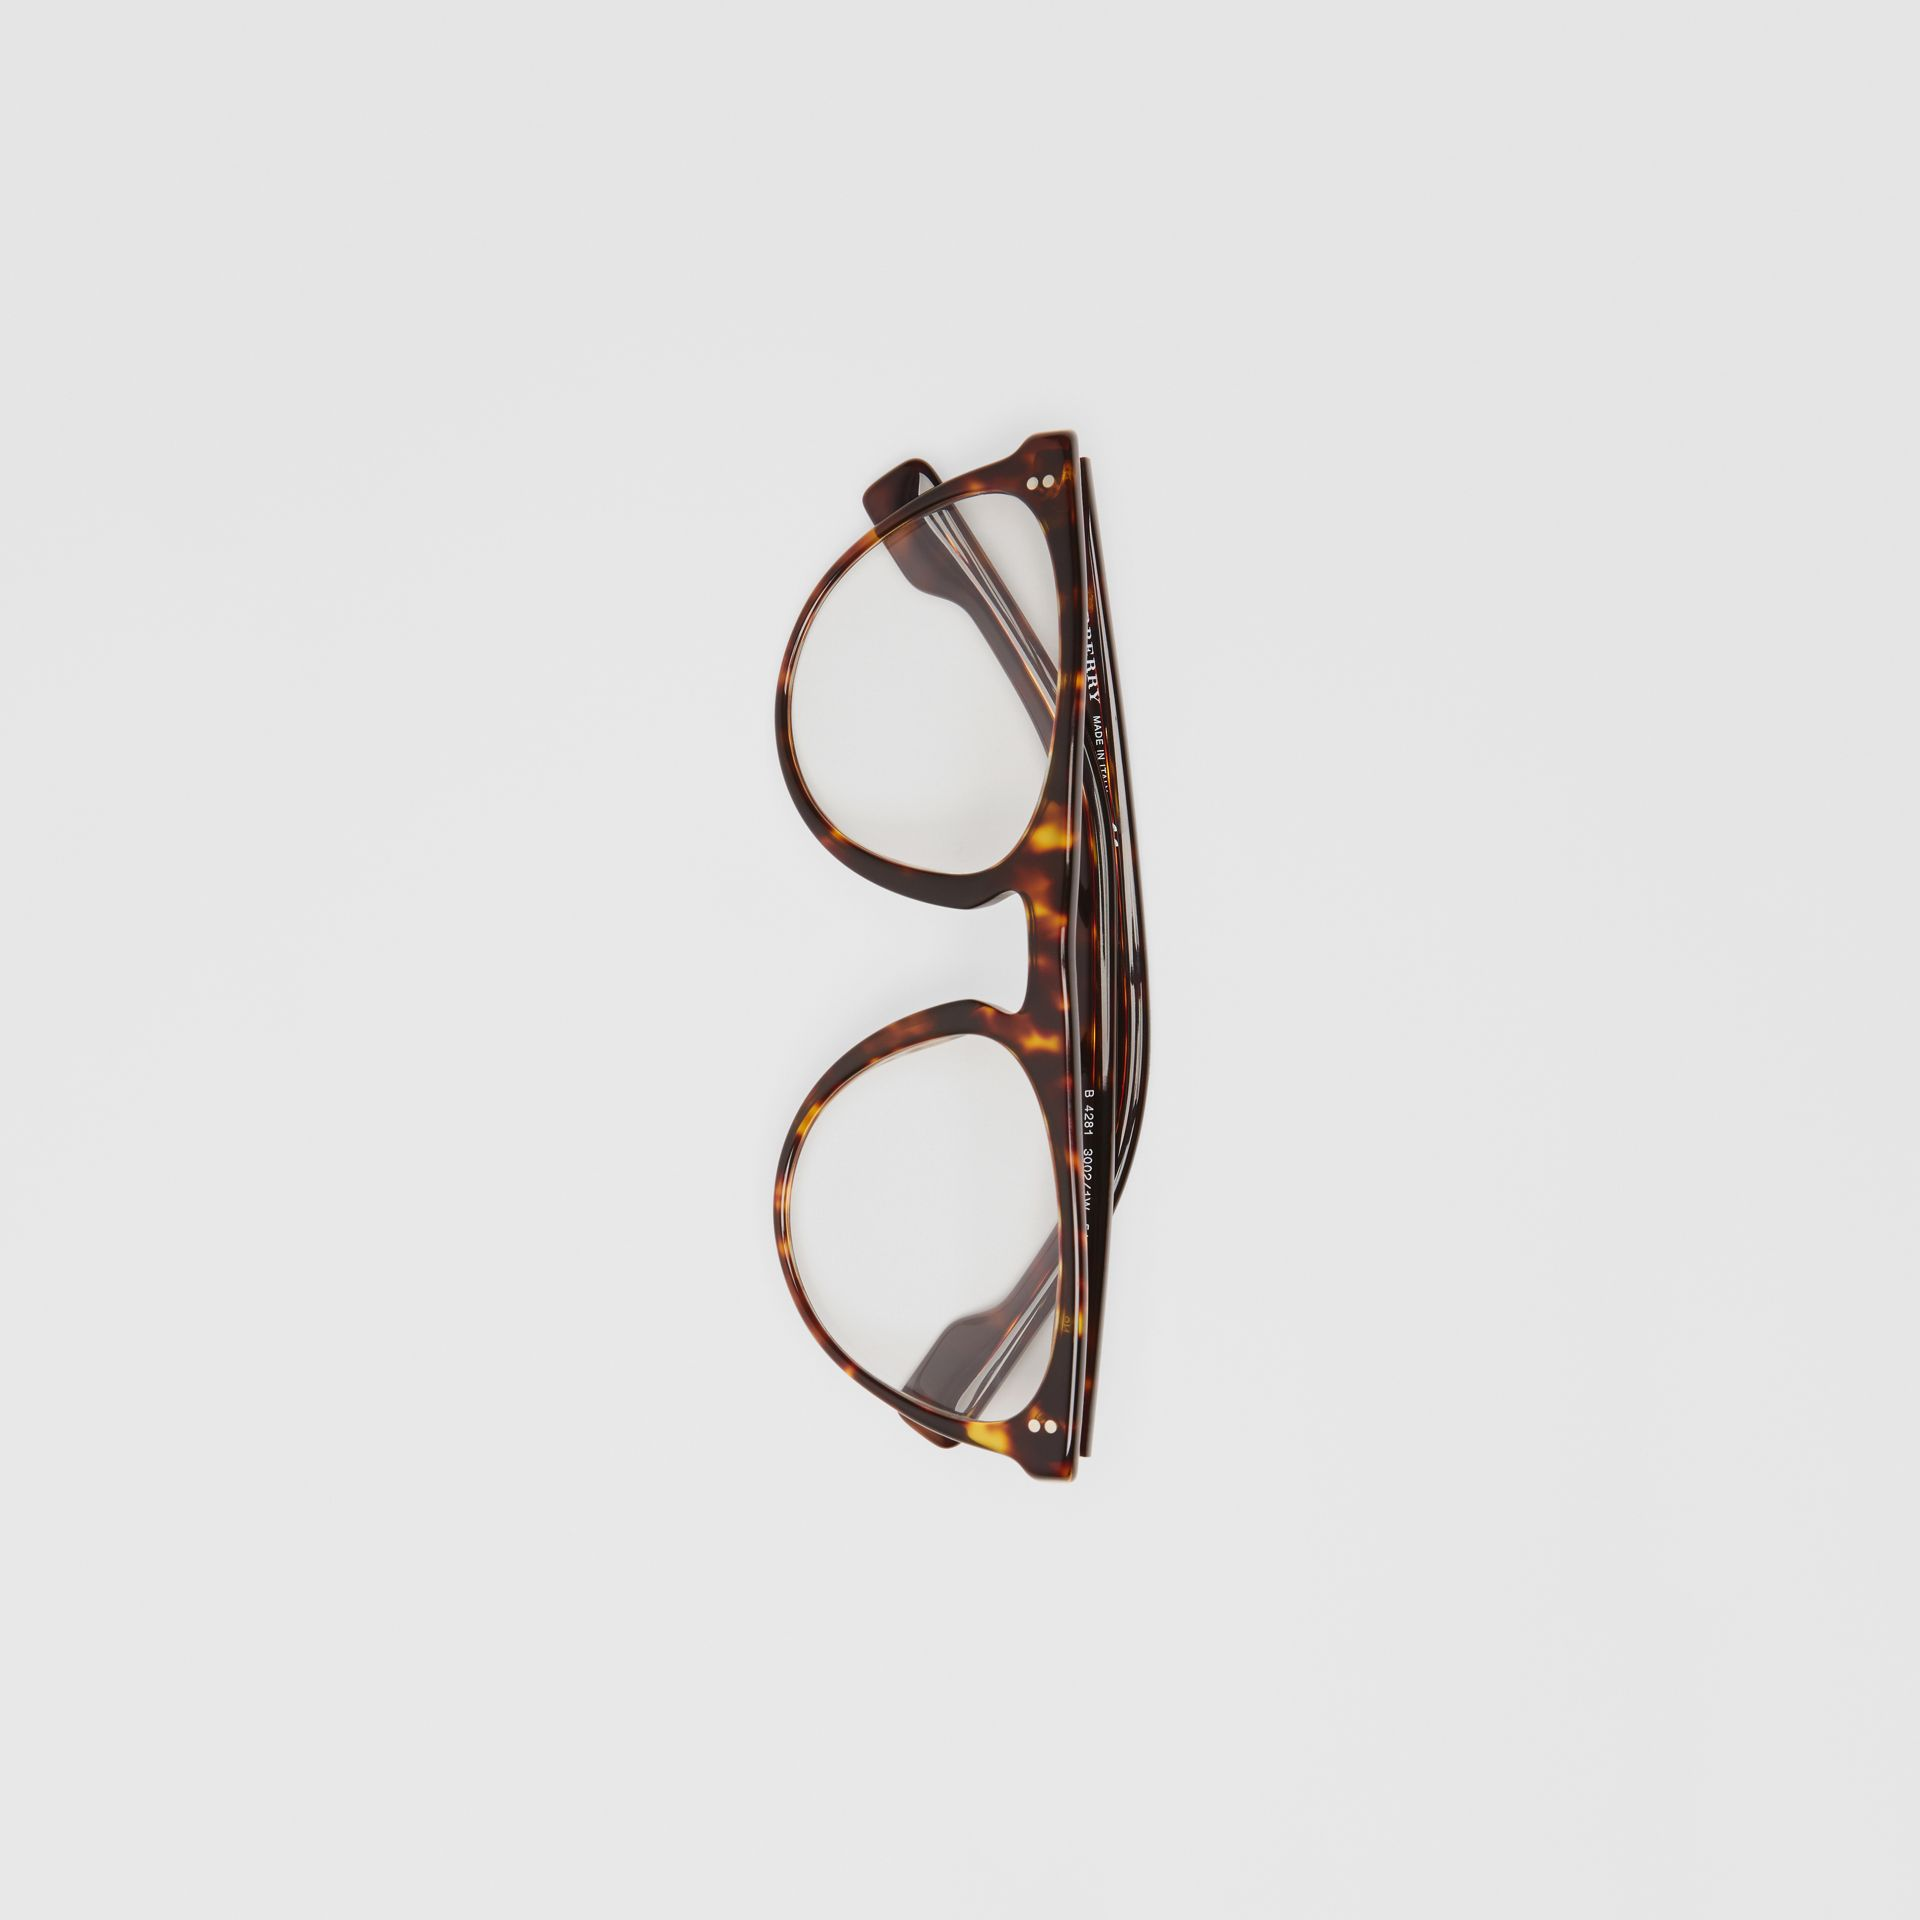 Keyhole D-shaped Optical Frames in Tortoise Shell - Men | Burberry - gallery image 3